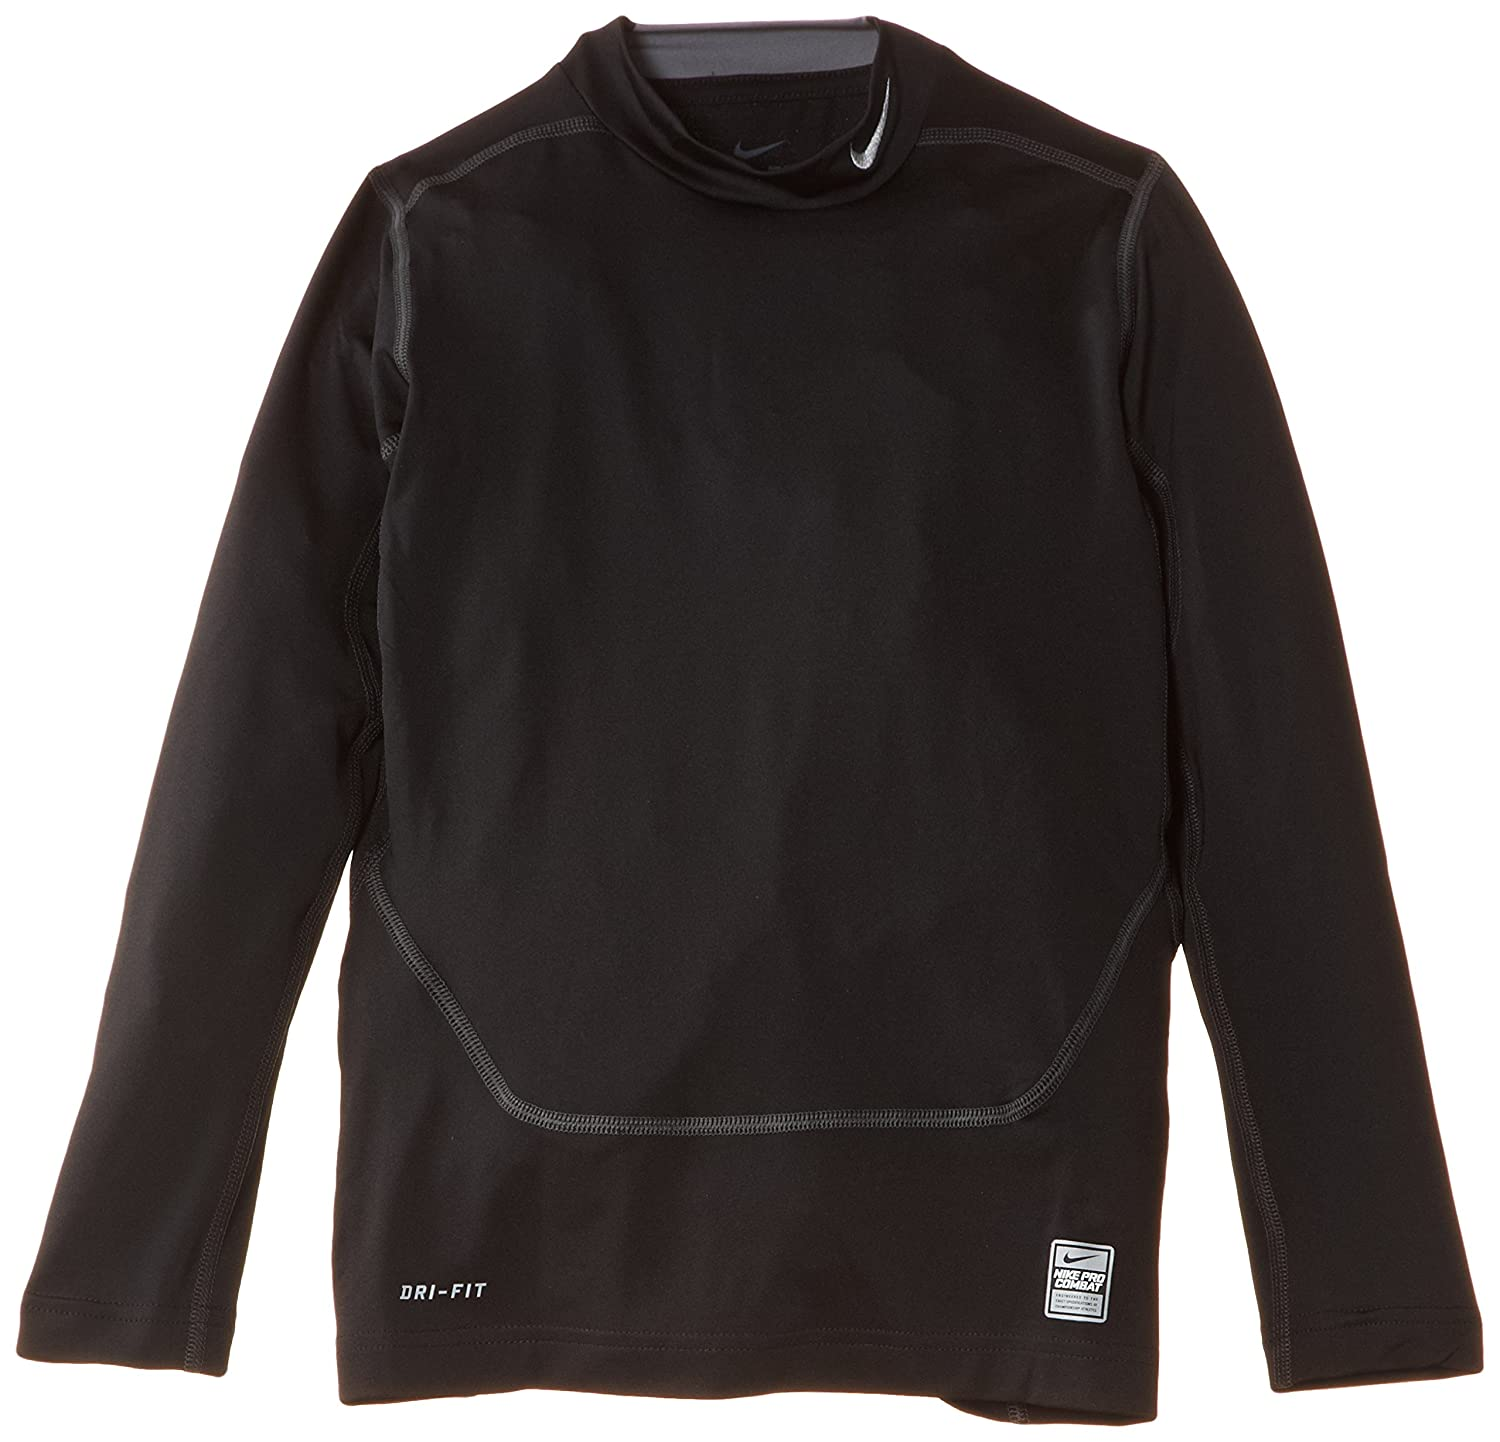 Nike Core Compression Mock Long-Sleeved Shirt black/cool grey Size:L Small 522803-010 522803-010_010_S